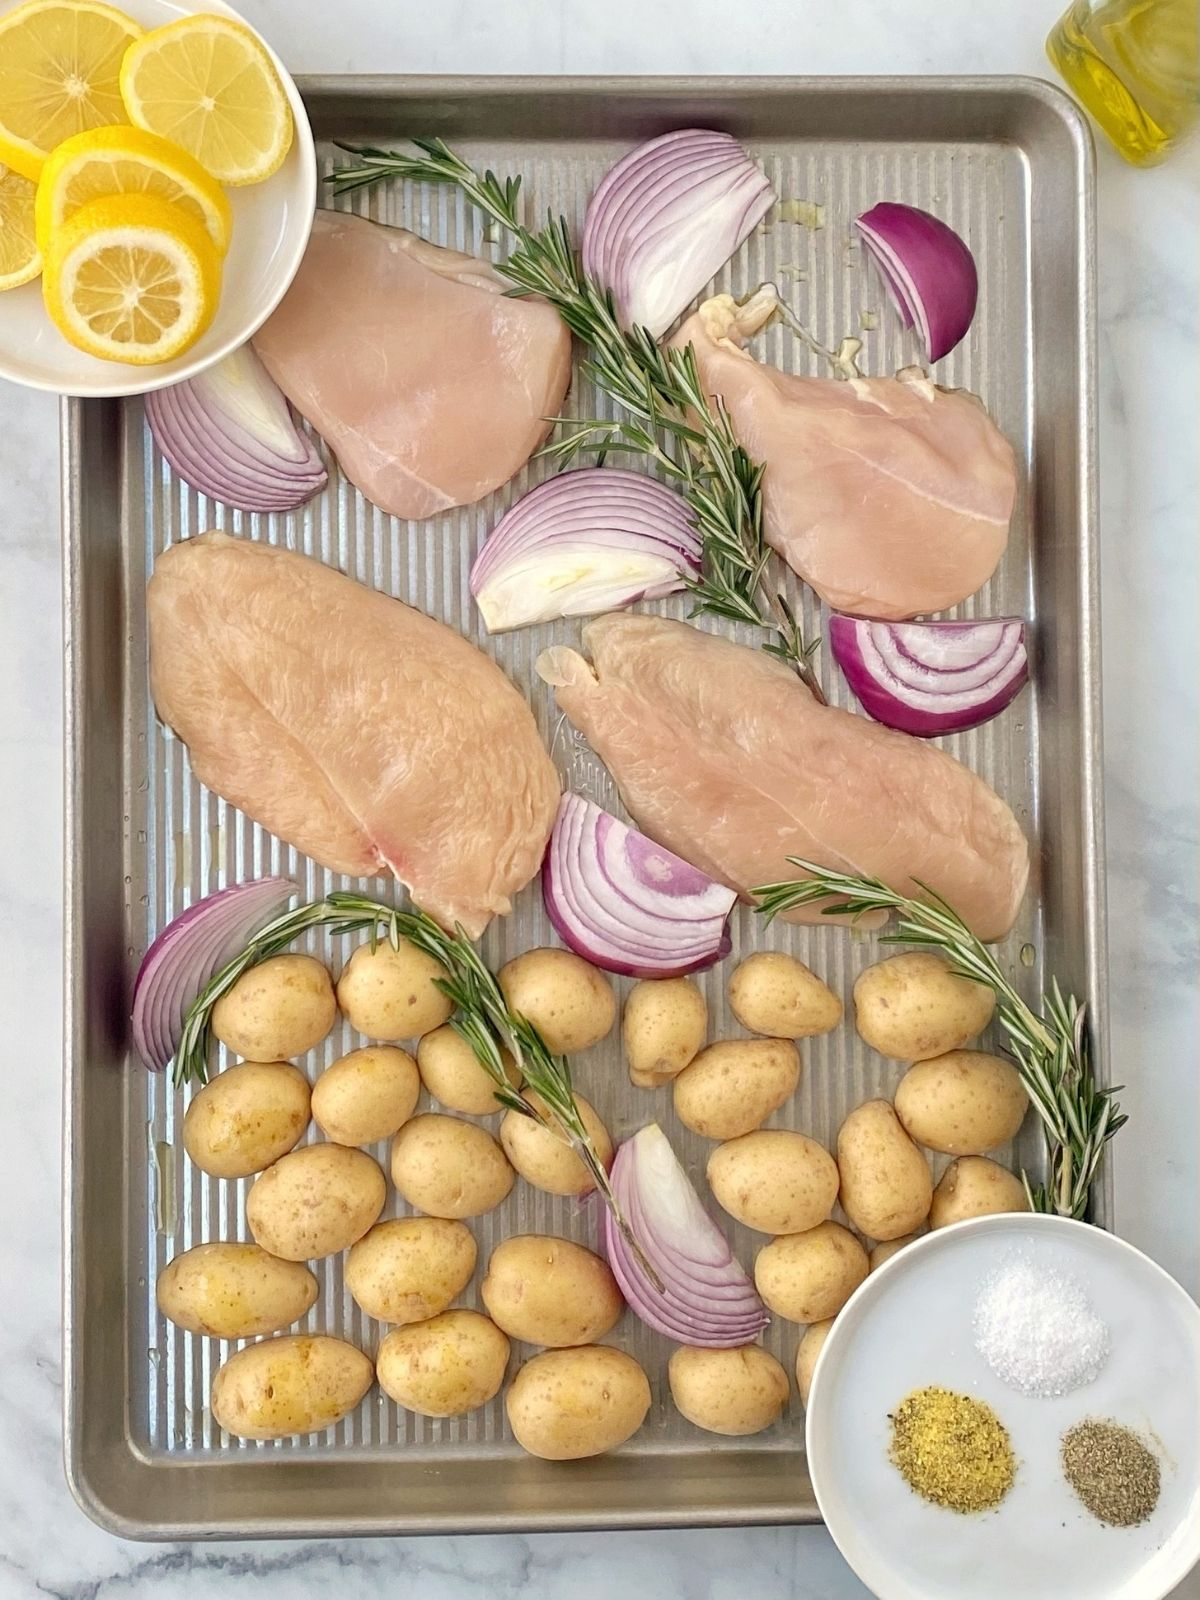 sheet pan of ingredients - chicken, potatoes, onions, rosemary, lemon slices, seasonings